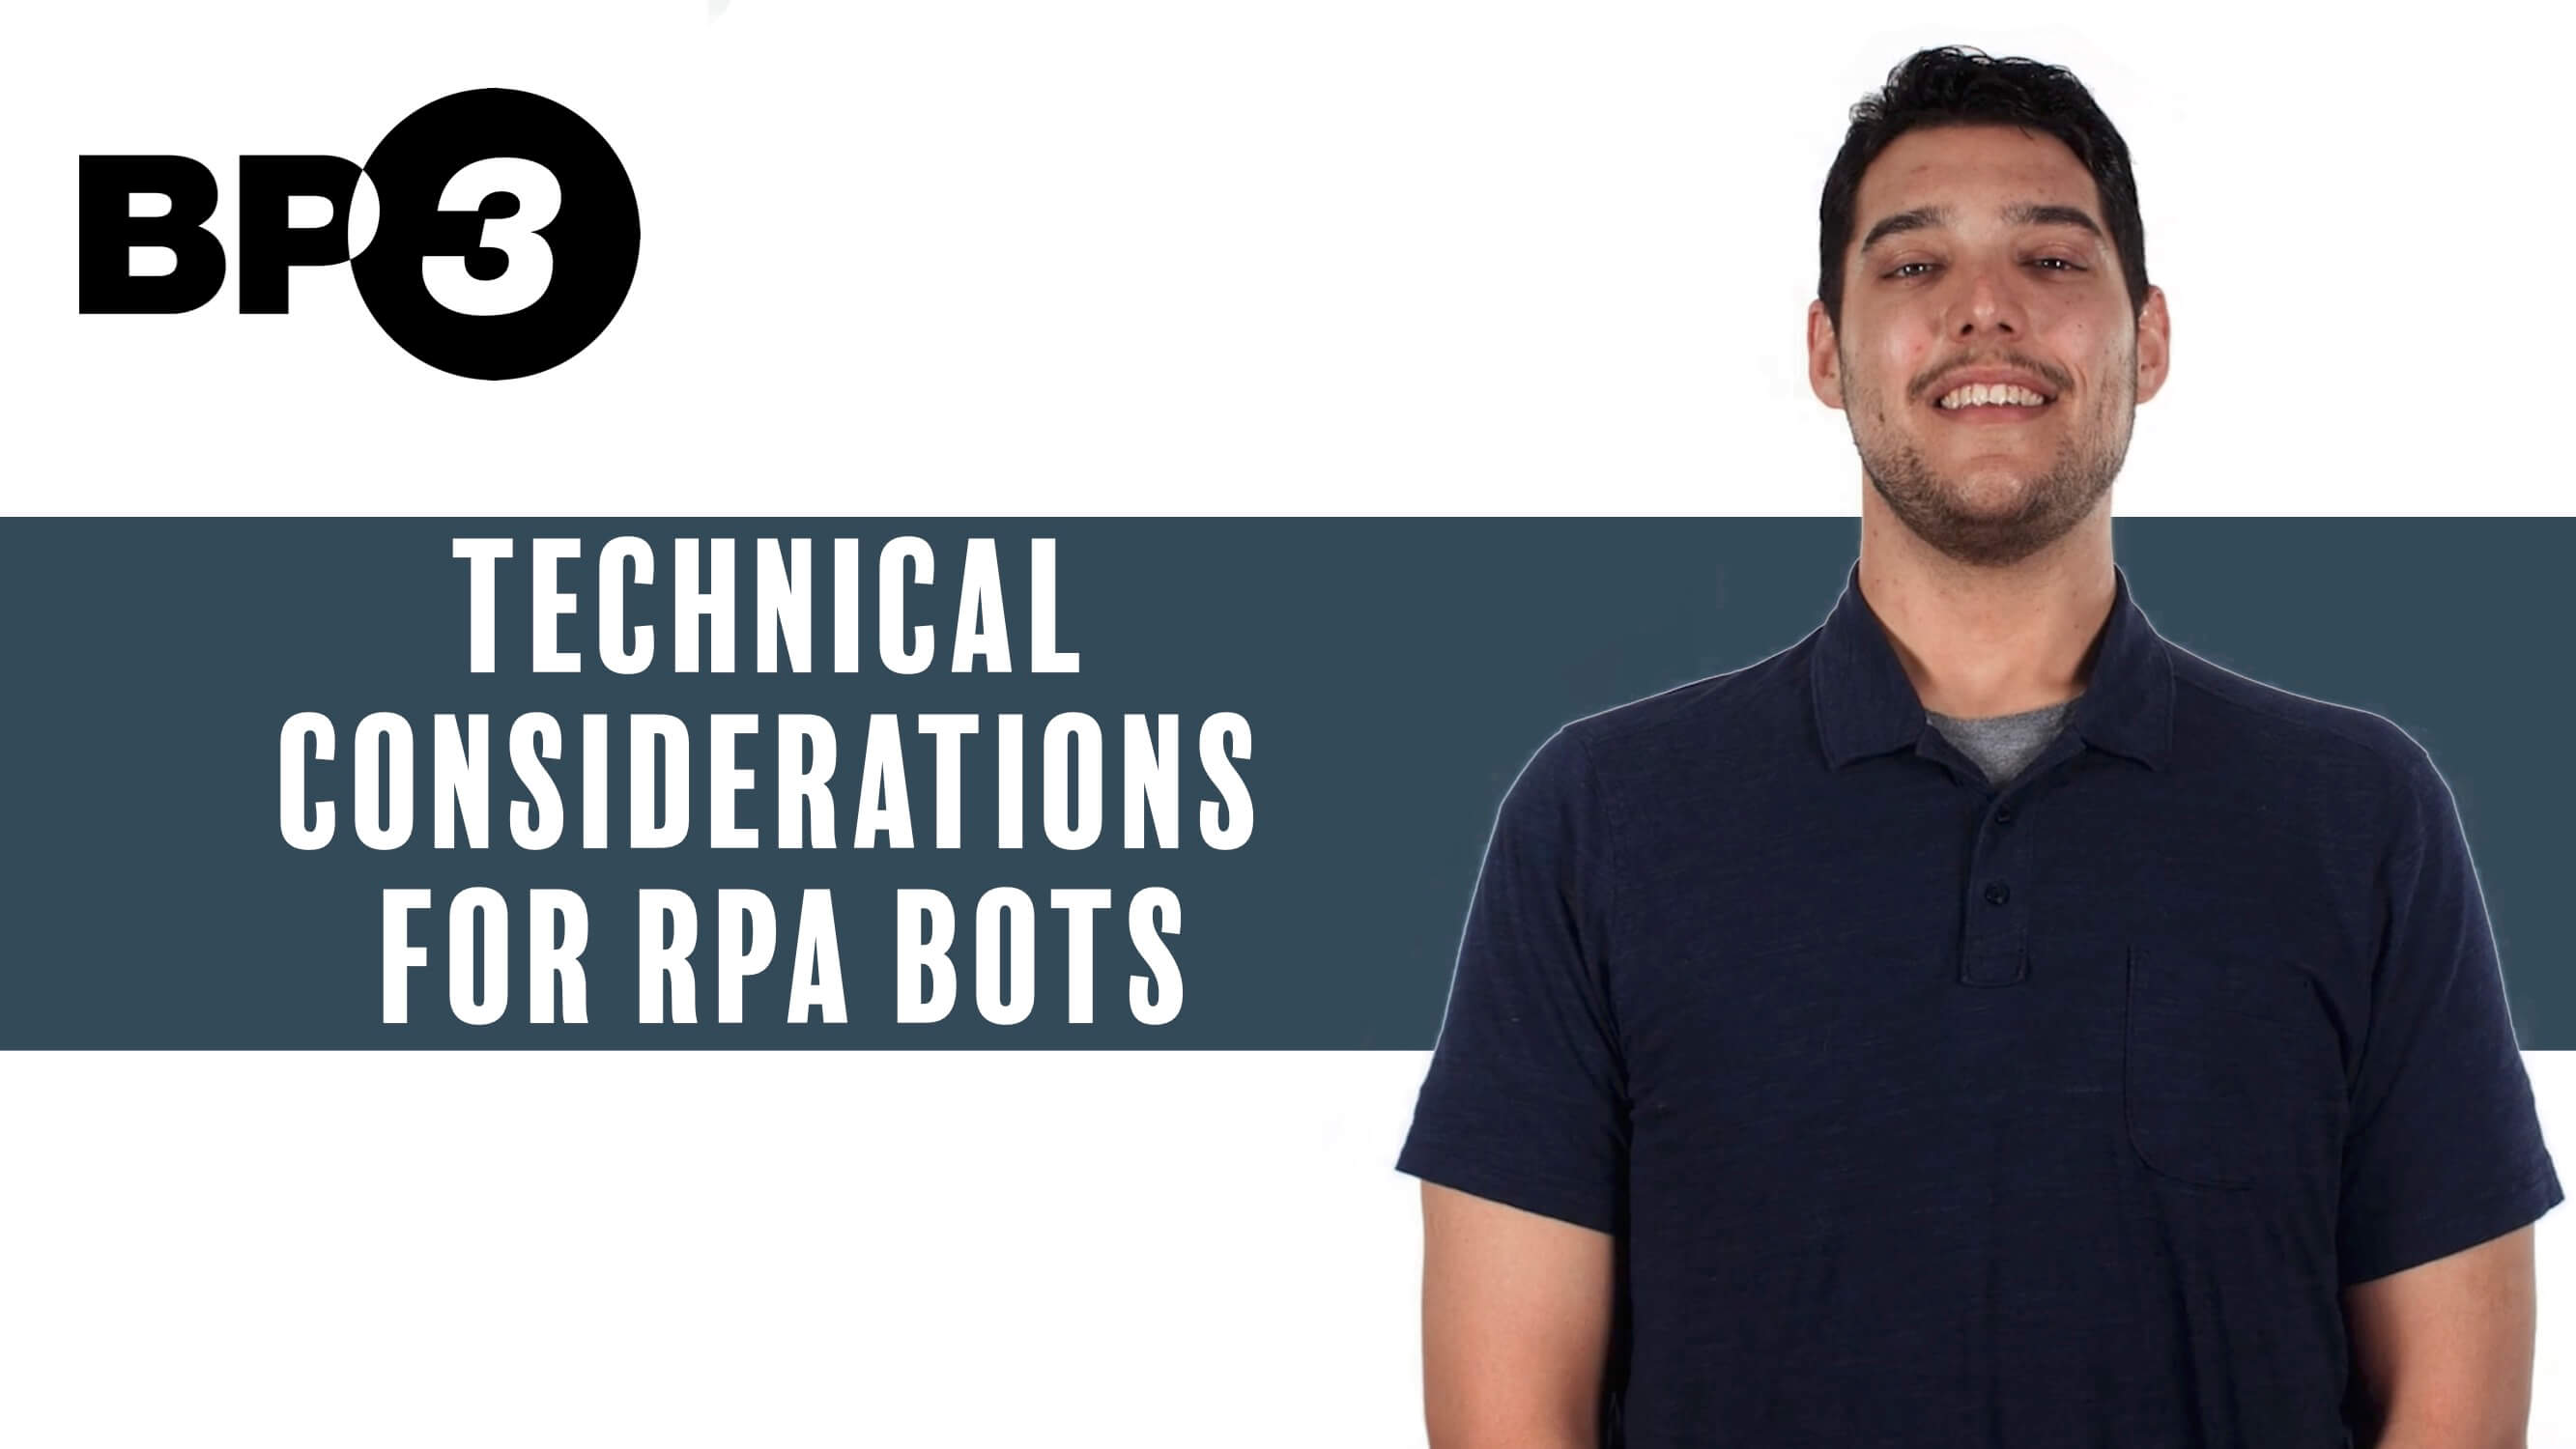 Technical Considerations for an RPA Bot